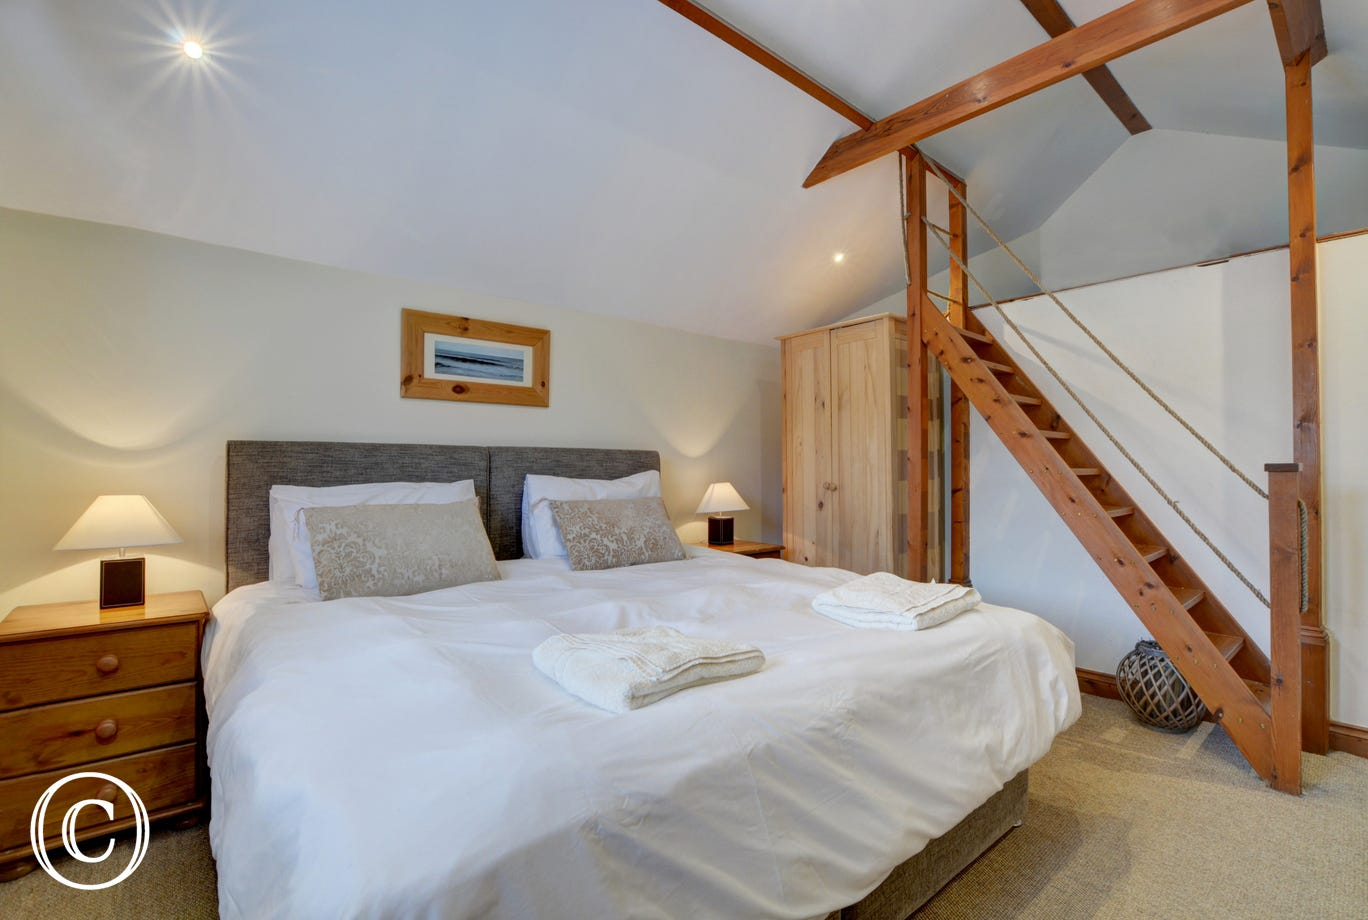 Stairs within the bedroom provide access to an open storage area with travel cot and child's buggy available for visitors use